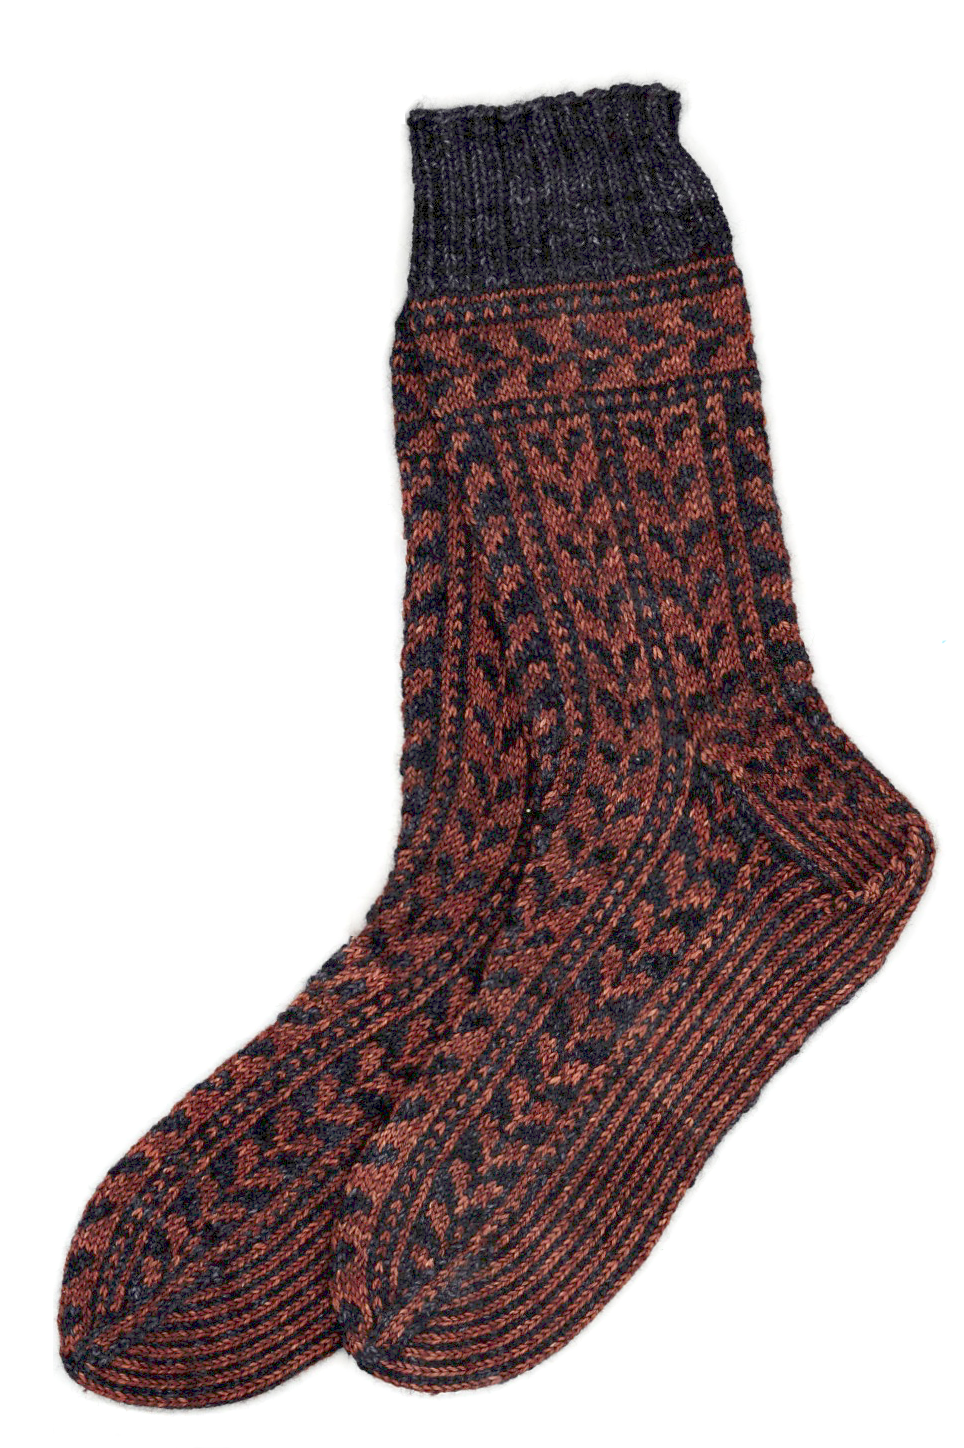 Socks of black and brown yarn, with a leaf pattern